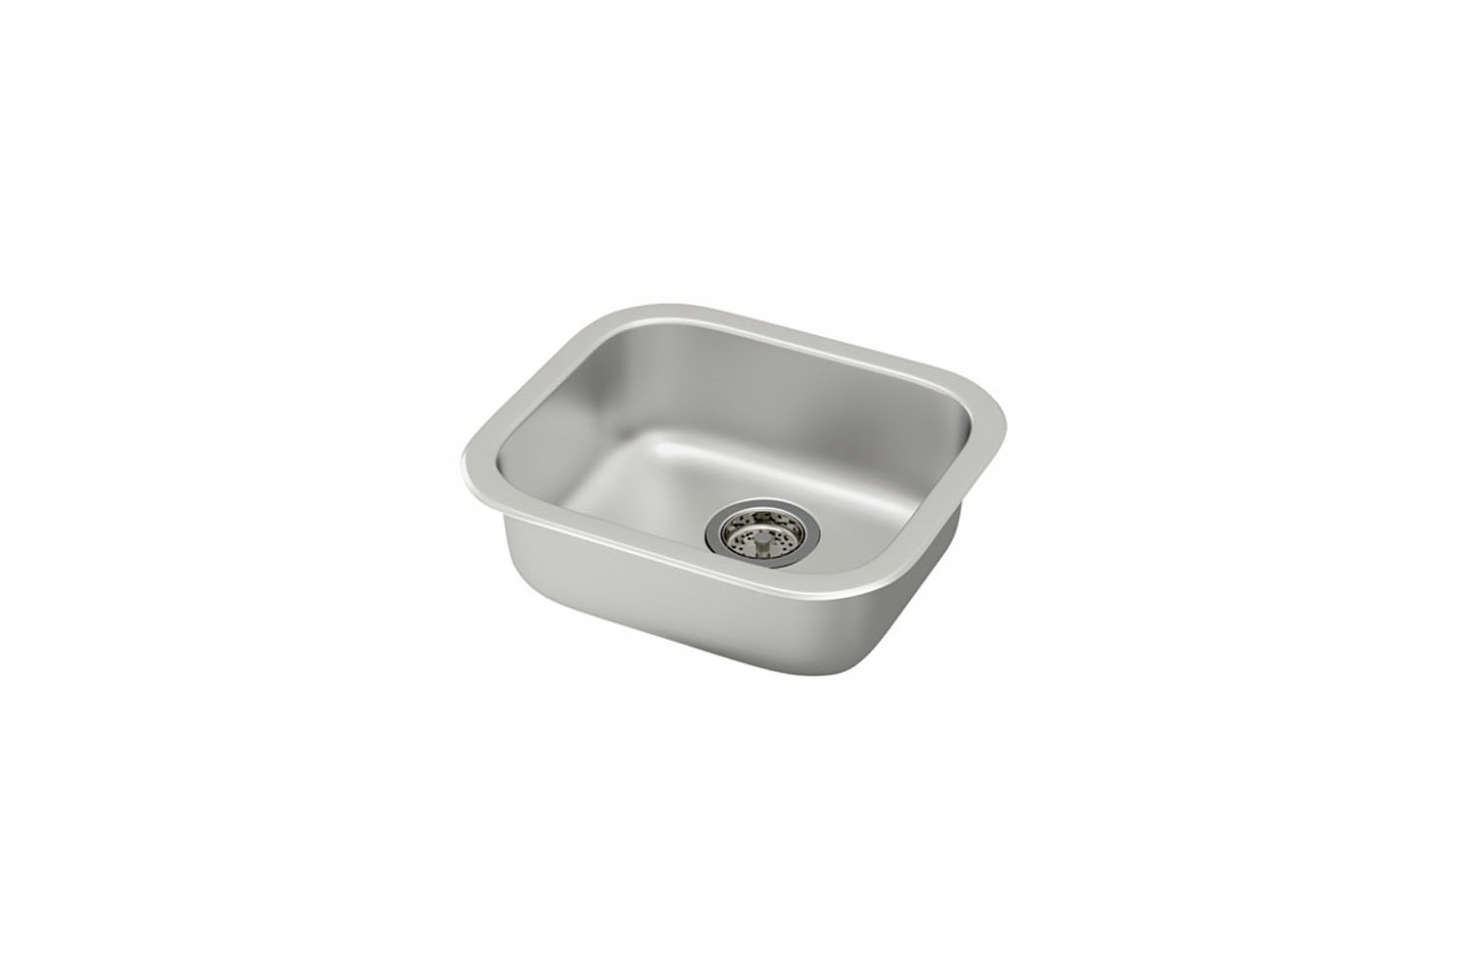 The small prep sink, the Fyndig Sink in stainless steel is $3src=